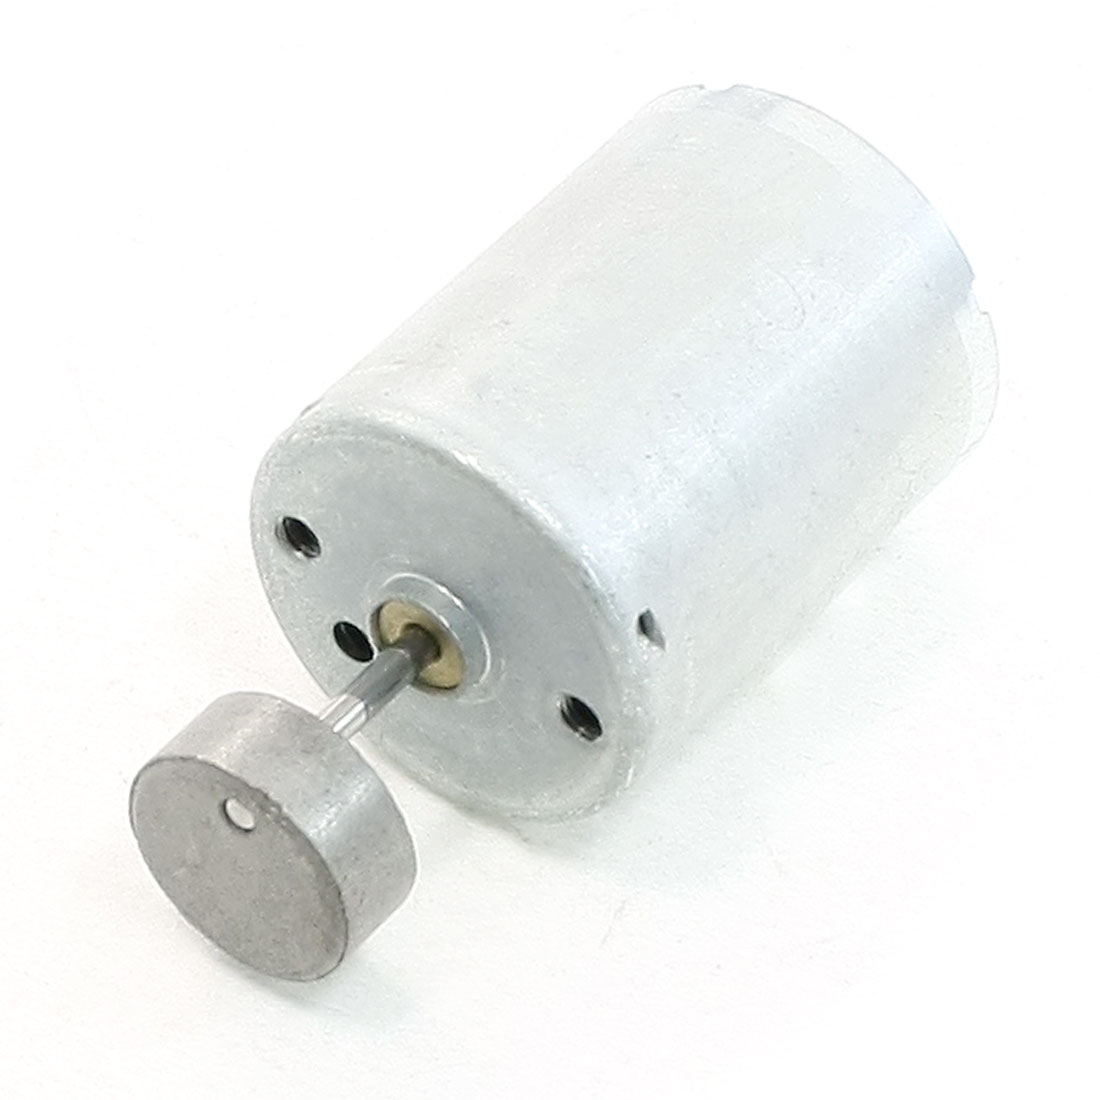 12VDC 5300RPM Rotary Speed 2 Terminals Connecting 2mm Dia Drive Shaft Motor